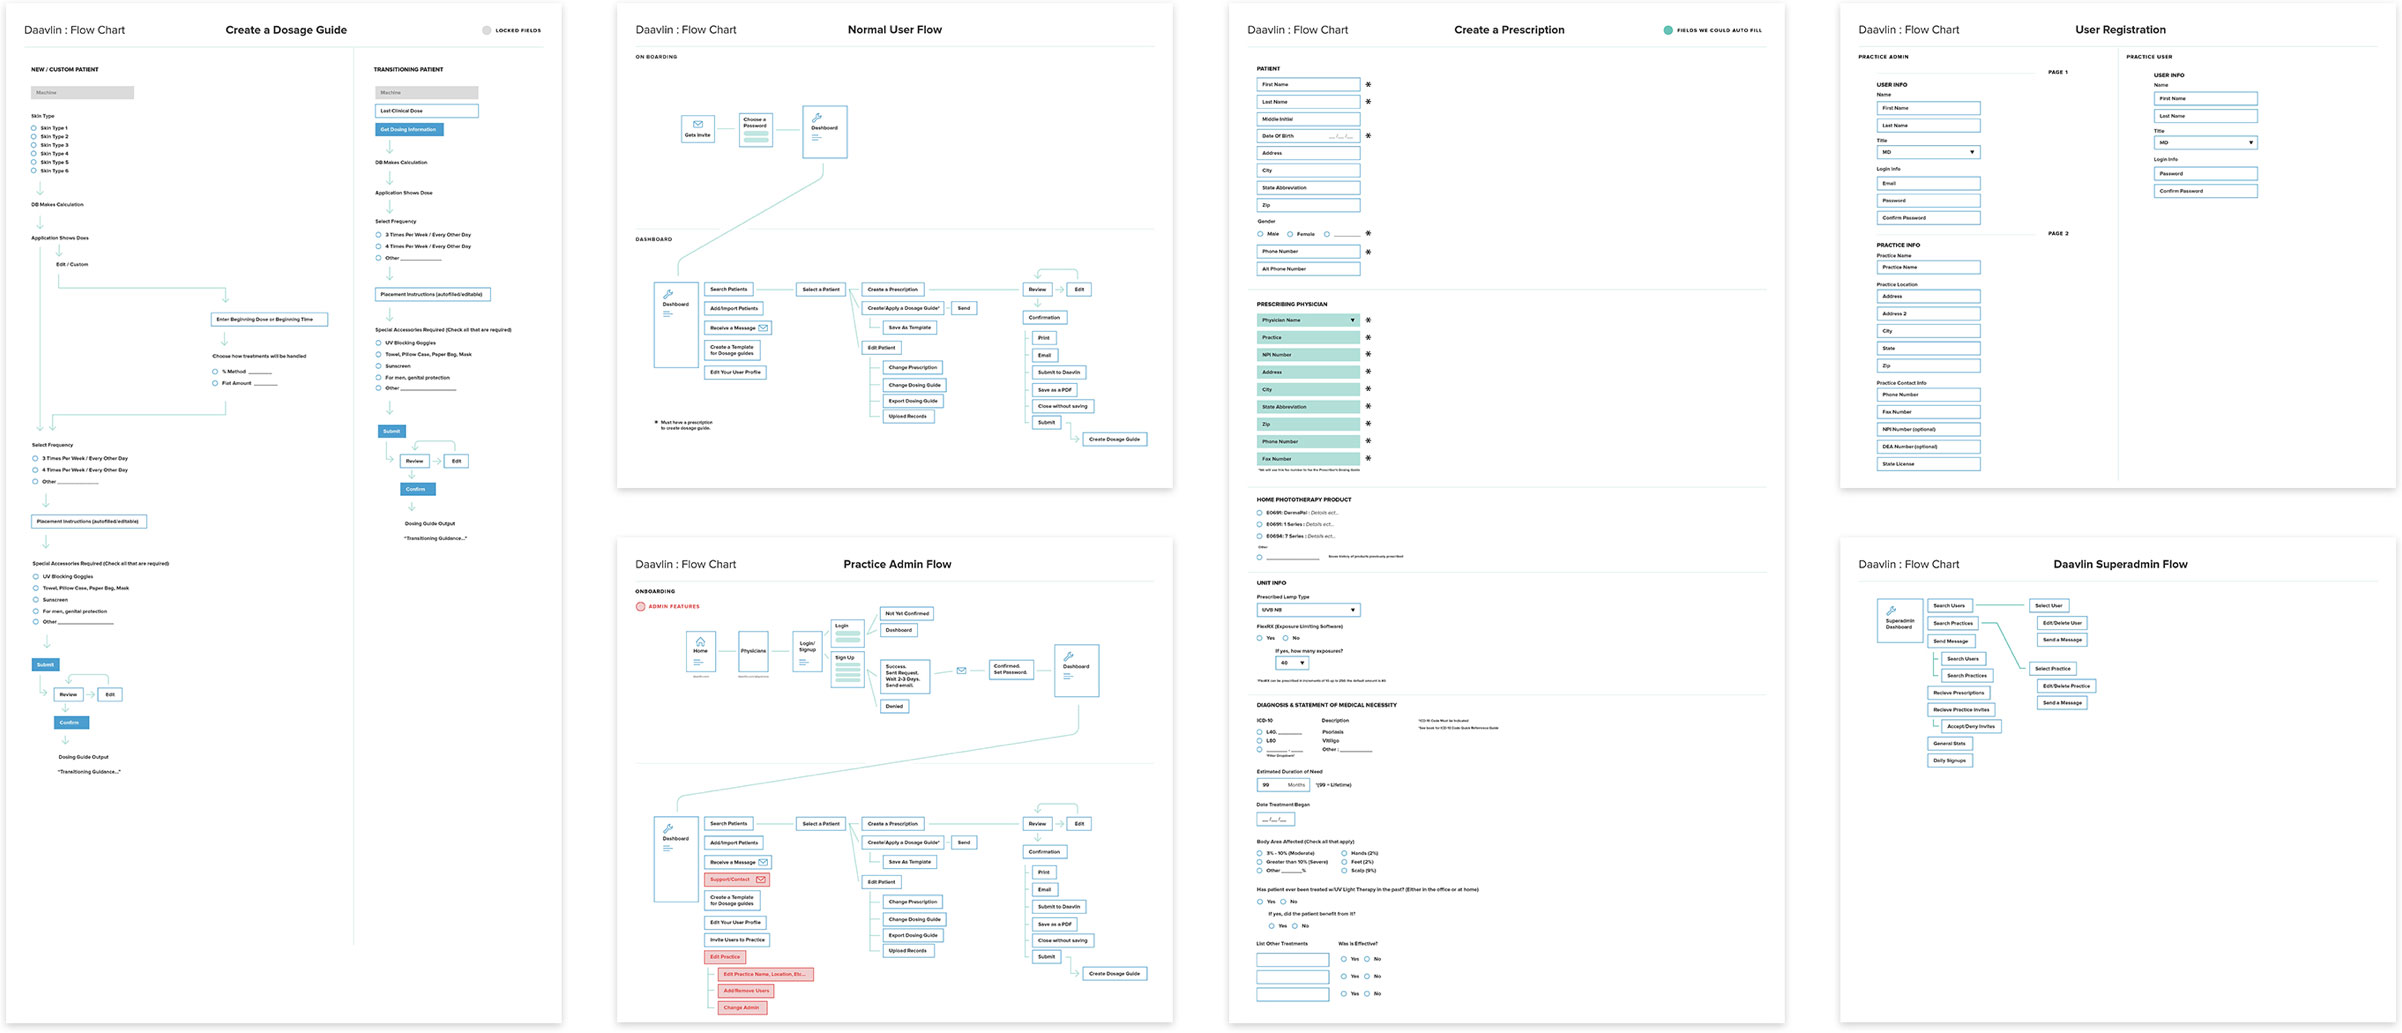 Flow charts diagramming the flow of information in the Daavlin app